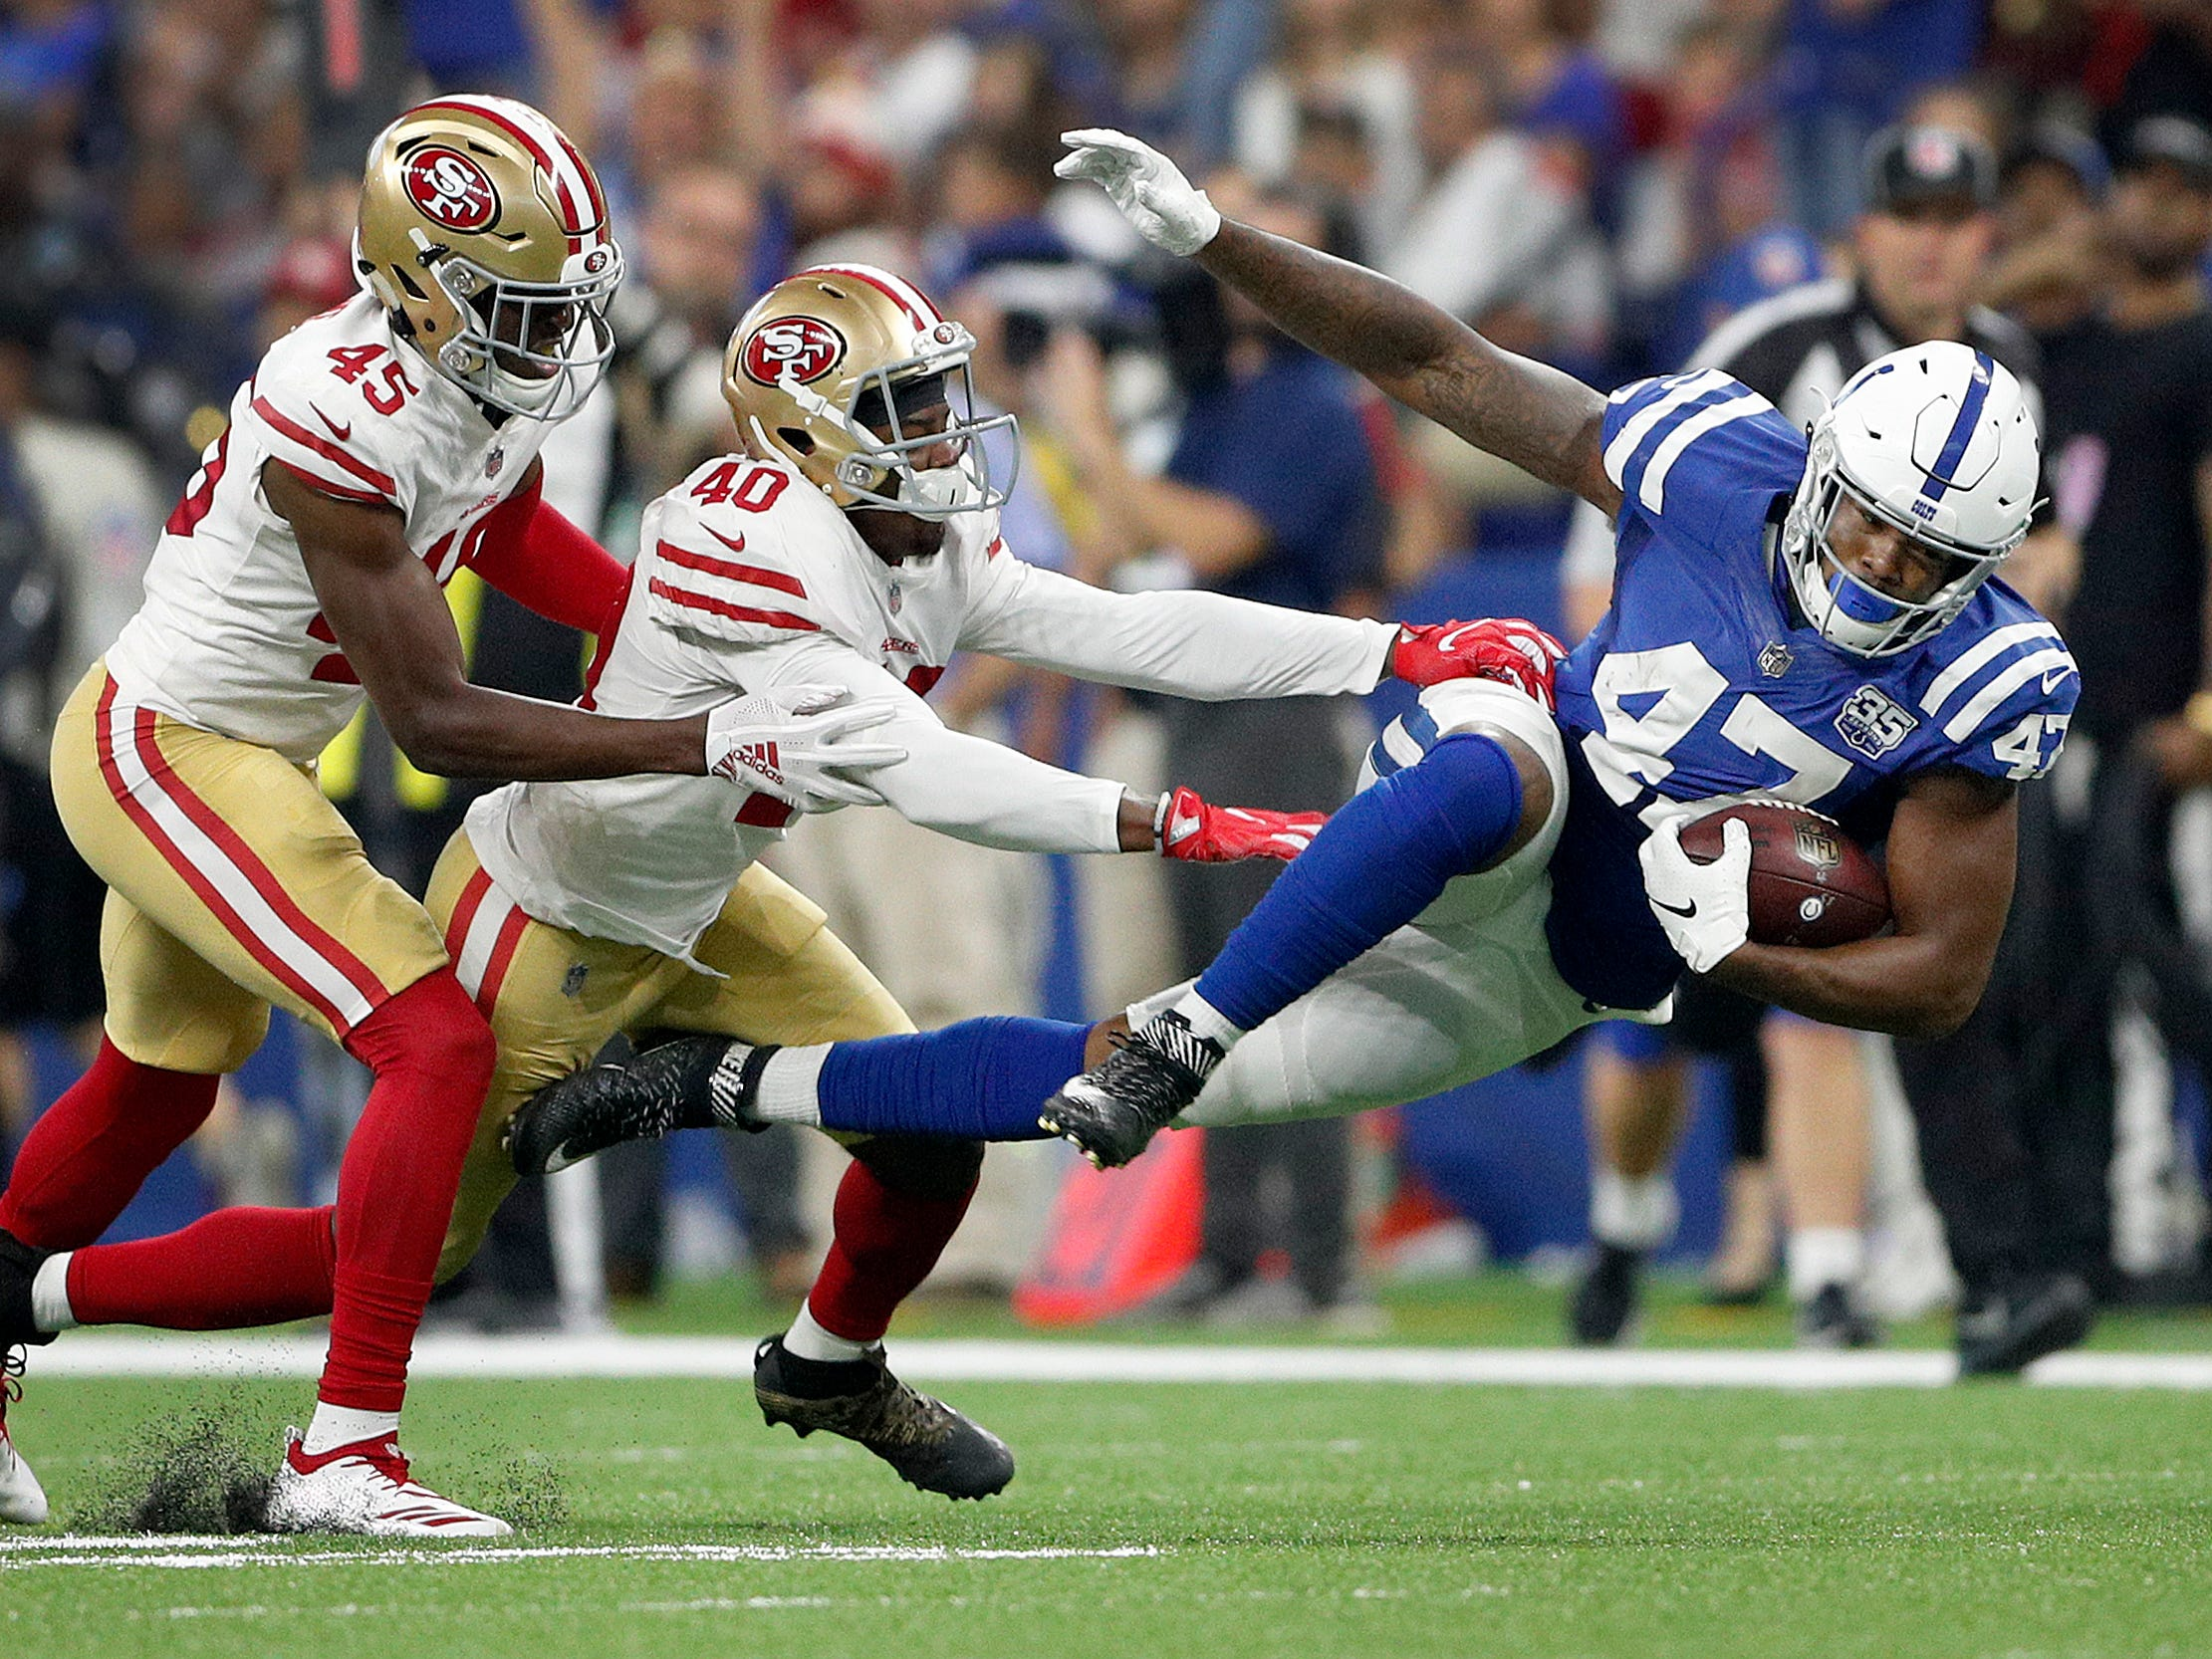 Indianapolis Colts tight end Darrell Daniels (47) is hit by San Francisco 49ers cornerback D.J. Reed (40) in the second half of their preseason football game at Lucas Oil Stadium Saturday, August 25, 2018. The Colts defeated the 49ers 23-17.